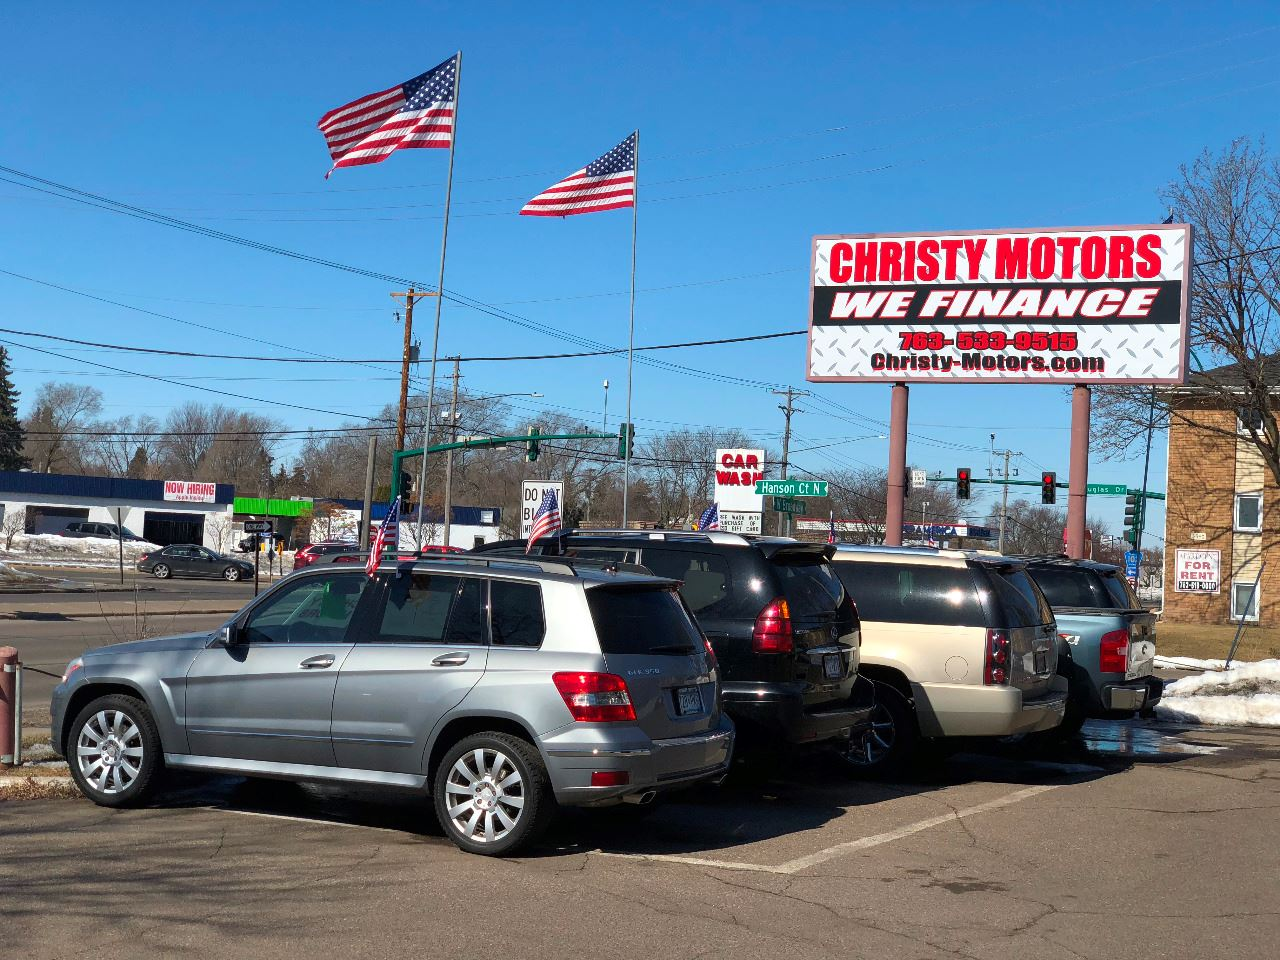 Christy Motors